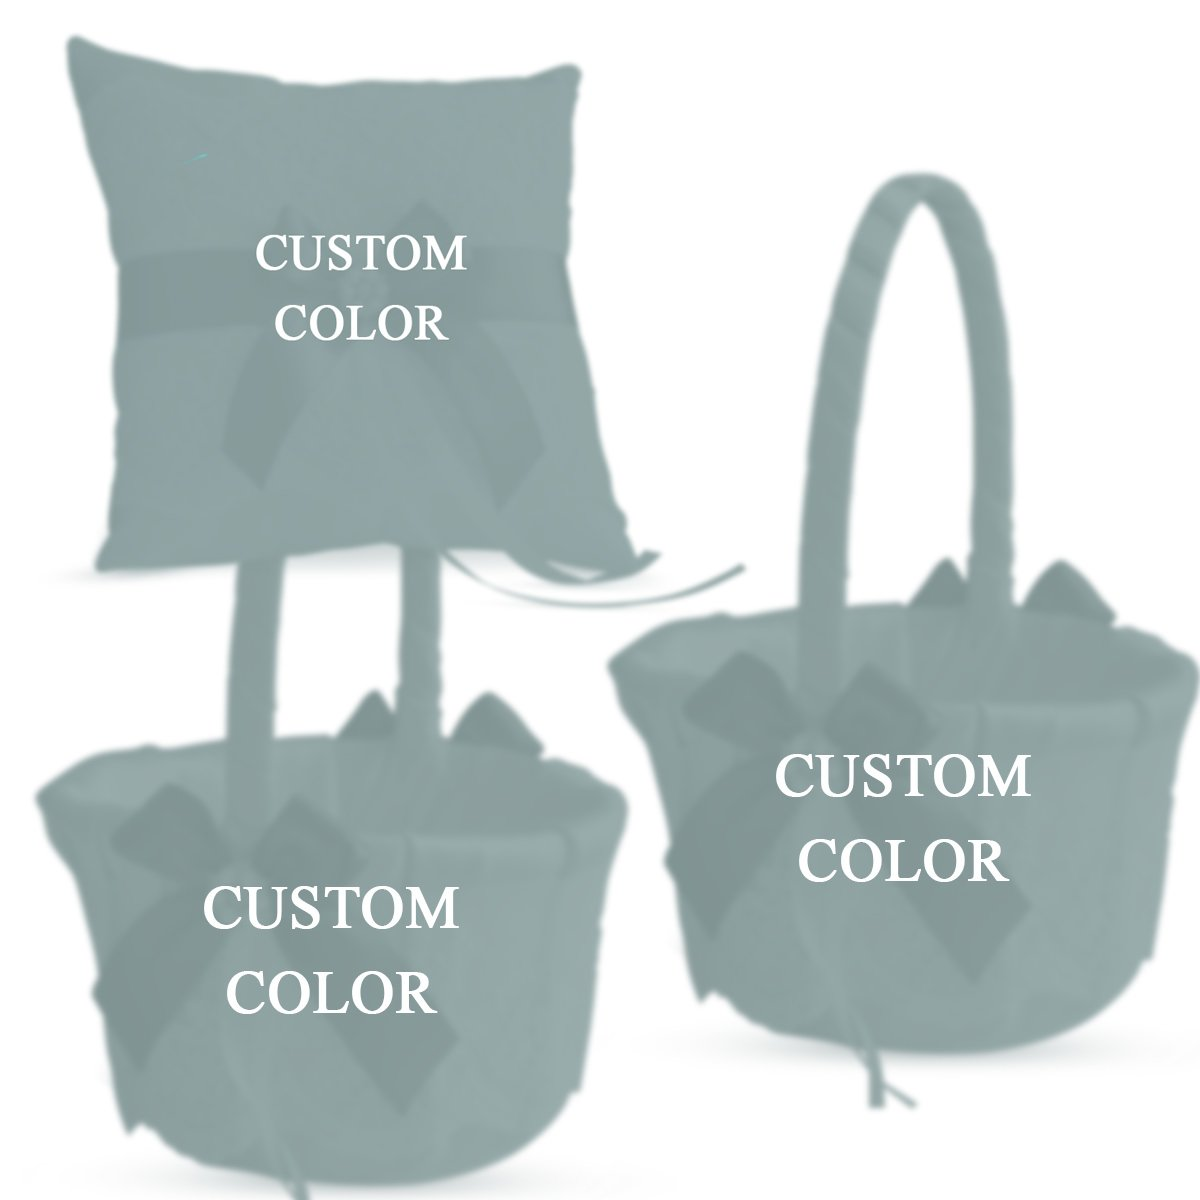 Alex Emotions Ivory Ring Bearer Pillow and Basket Set | Lace Collection | Flower Girl & Welcome Basket for Guest | Handmade Wedding Baskets & Pillows (Custom Color)